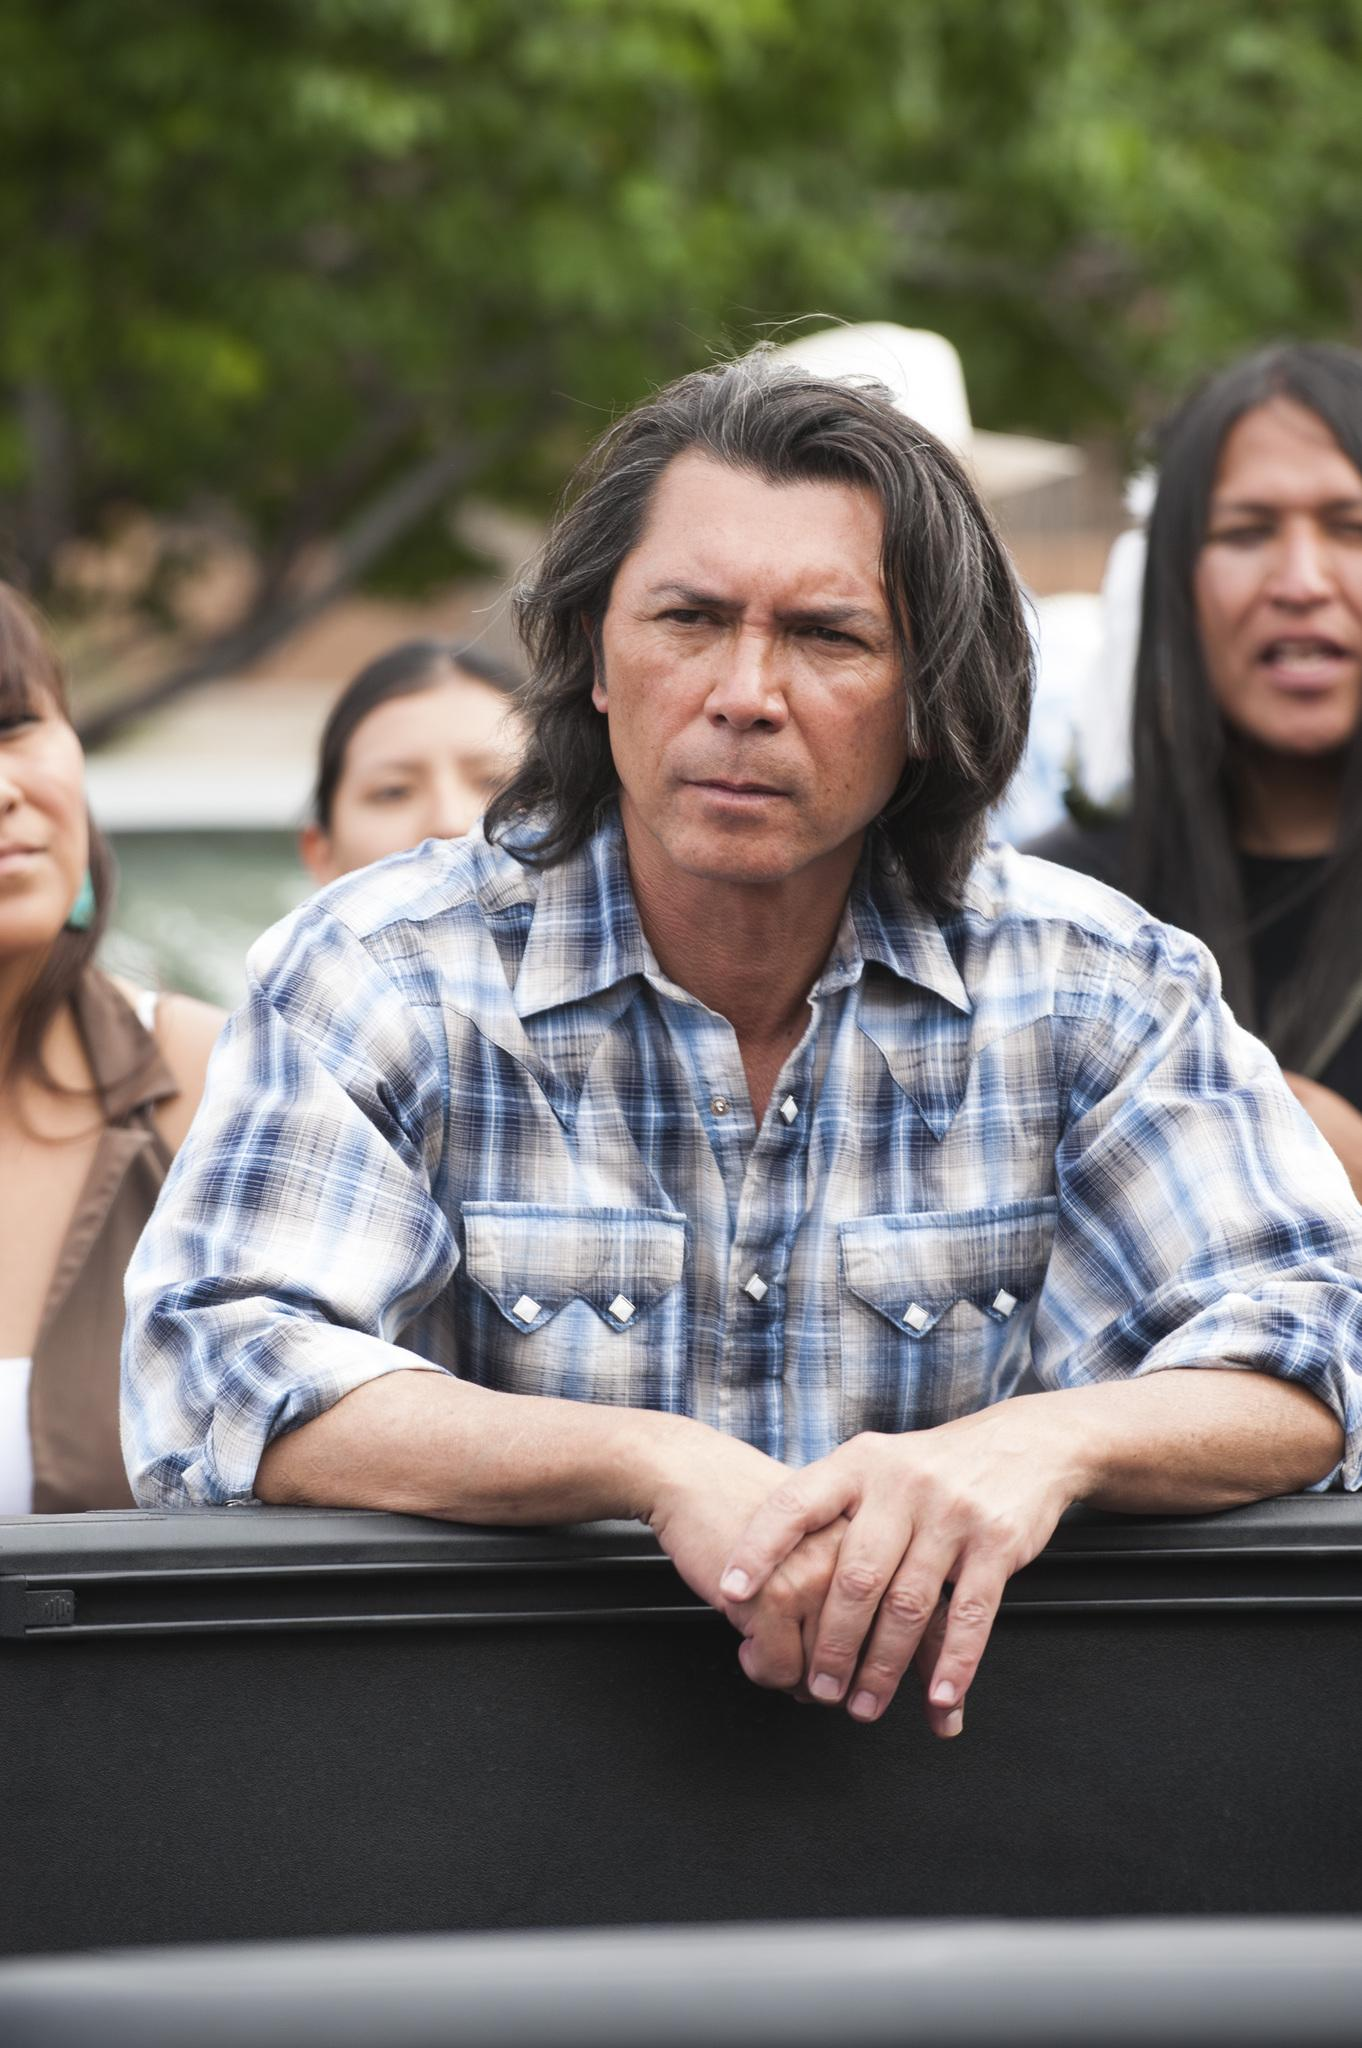 lou diamond phillips net worthlou diamond phillips young, lou diamond phillips stand and deliver, lou diamond phillips twitter, lou diamond phillips singer, lou diamond phillips route 666, lou diamond phillips imagine dragons, lou diamond phillips biography, lou diamond phillips height, lou diamond phillips, lou diamond phillips movies, lou diamond phillips imdb, lou diamond phillips net worth, lou diamond phillips la bamba, lou diamond phillips brooklyn 99, lou diamond phillips the ranch, lou diamond phillips real name, lou diamond phillips nationality, lou diamond phillips wife, lou diamond phillips death, lou diamond phillips age